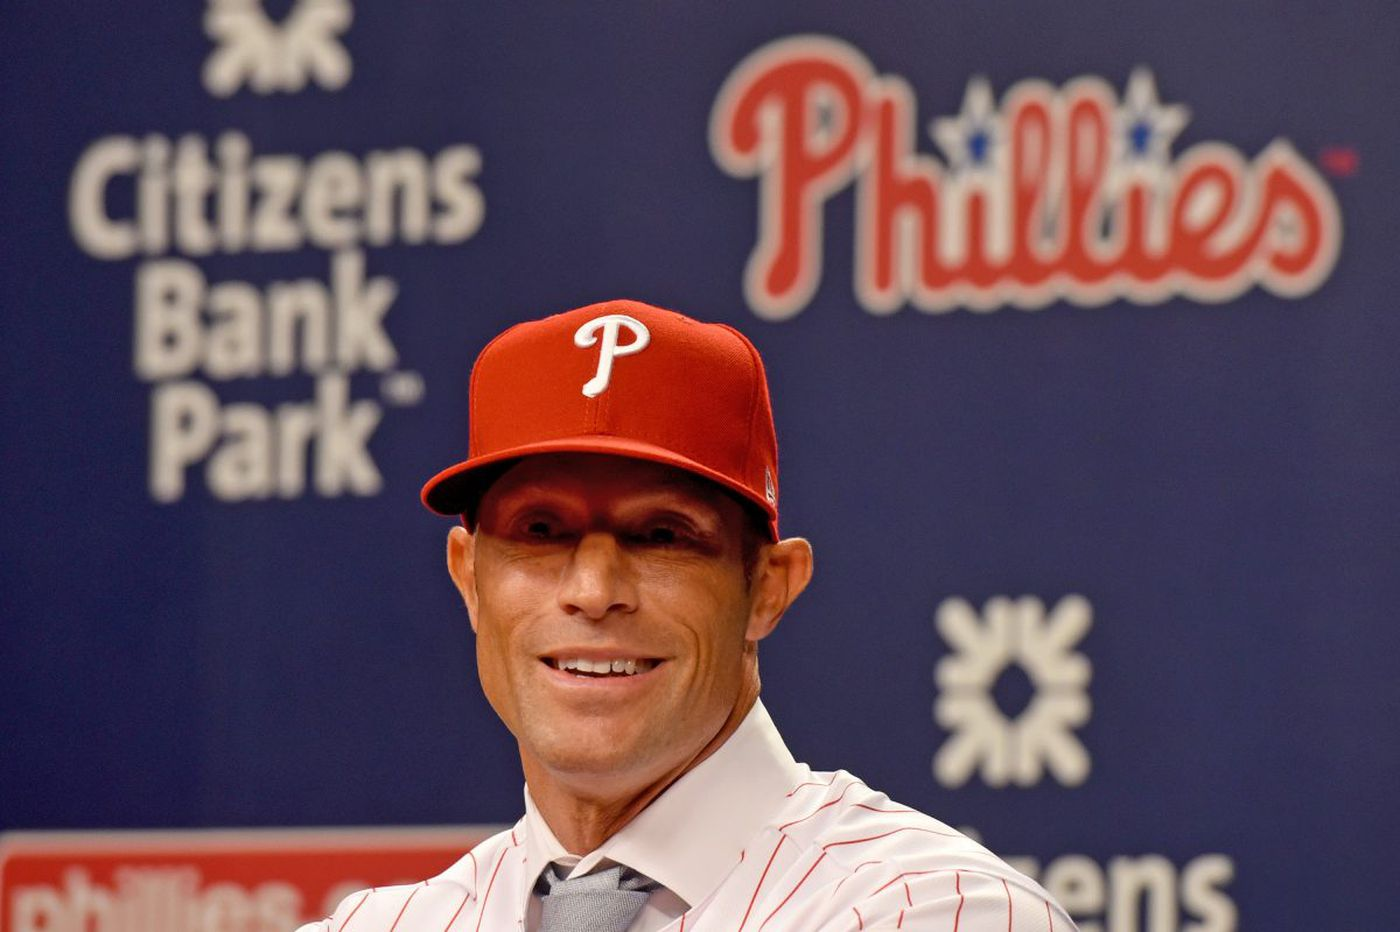 Phillies could hire unconventional bench coach for Gabe Kapler